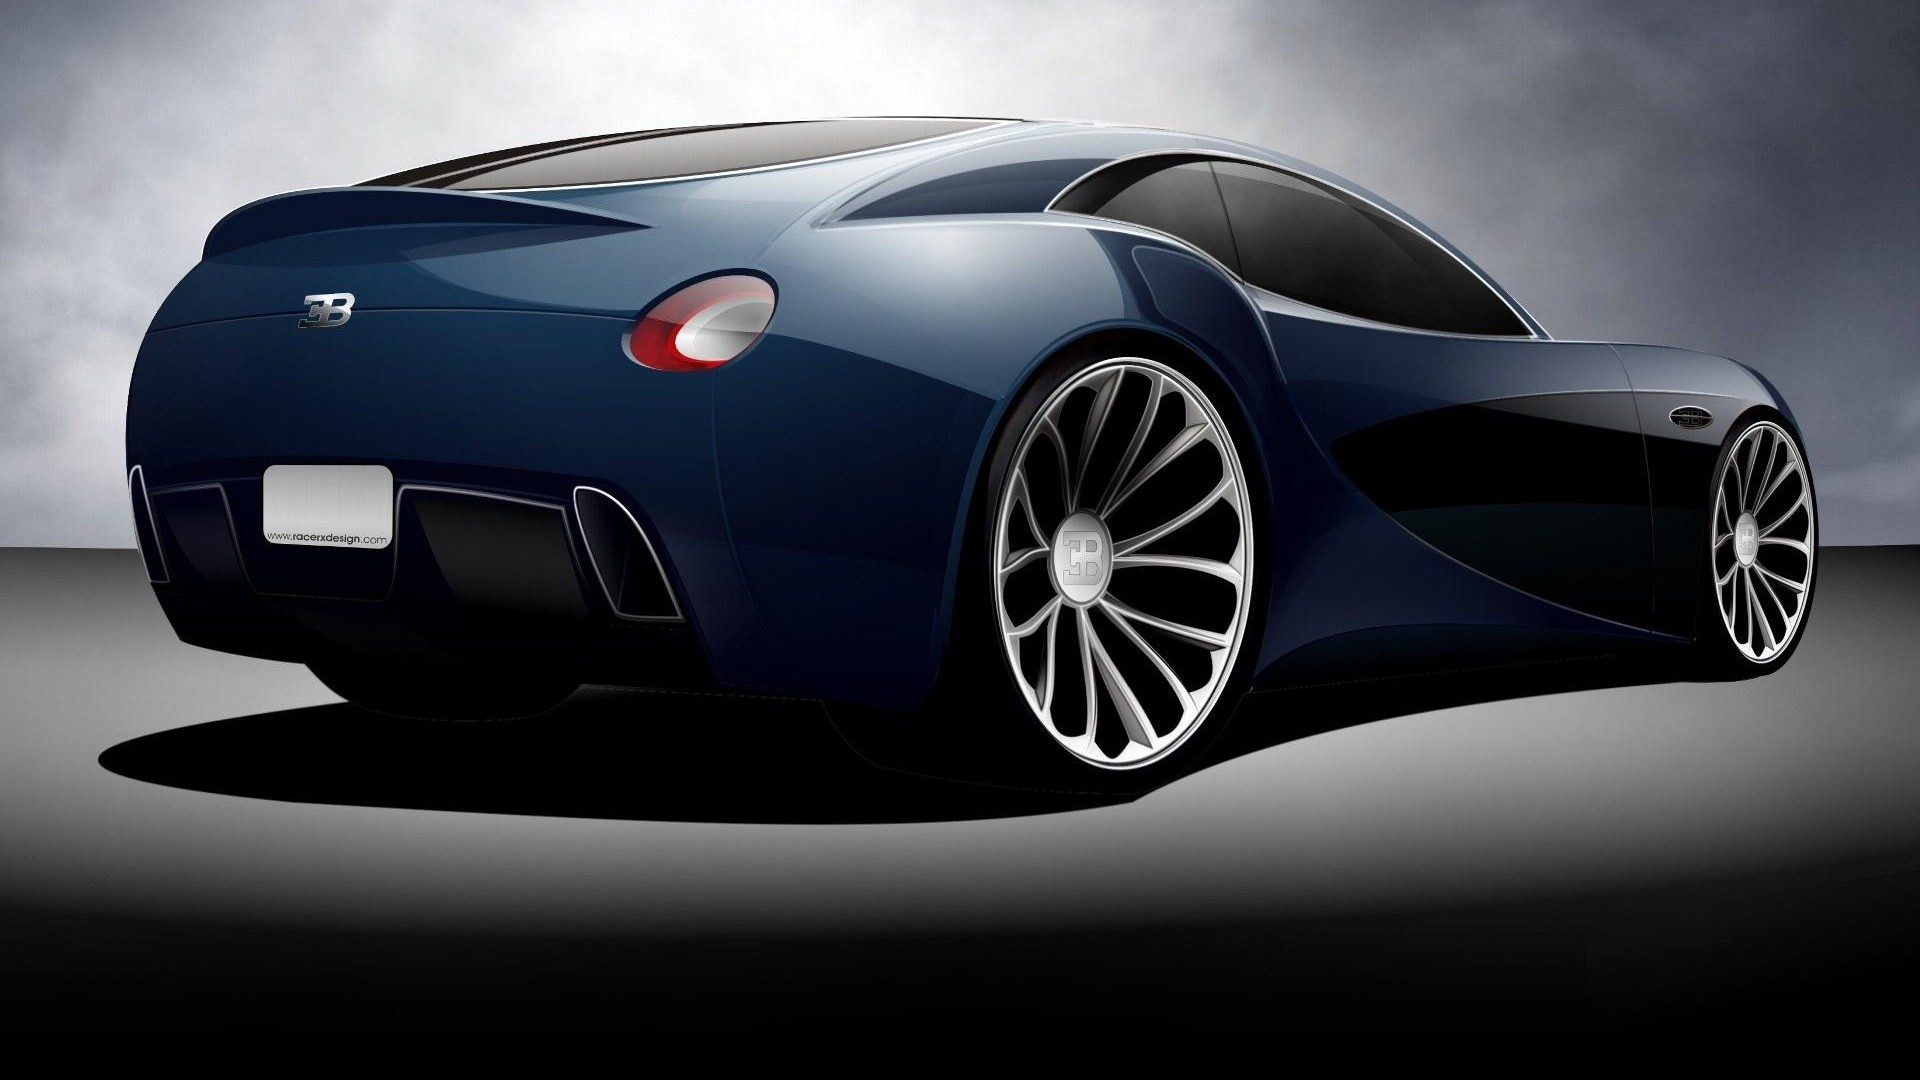 download Sports Car 2016 New Look Wallpapers and Photos